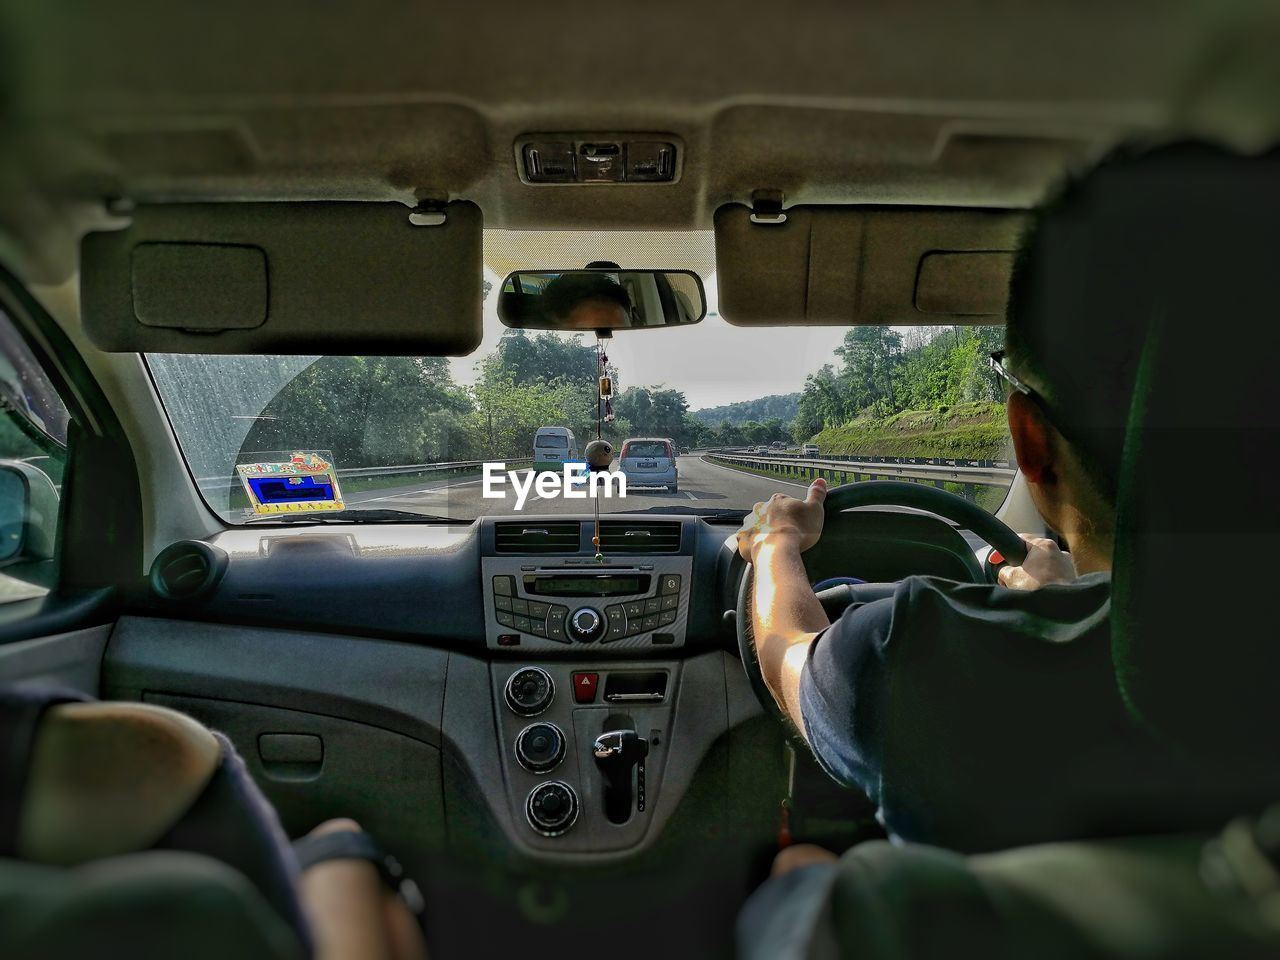 car, vehicle interior, car interior, transportation, mode of transport, land vehicle, real people, steering wheel, dashboard, day, one person, driving, lifestyles, travel, leisure activity, men, vehicle seat, human hand, water, nature, close-up, outdoors, sky